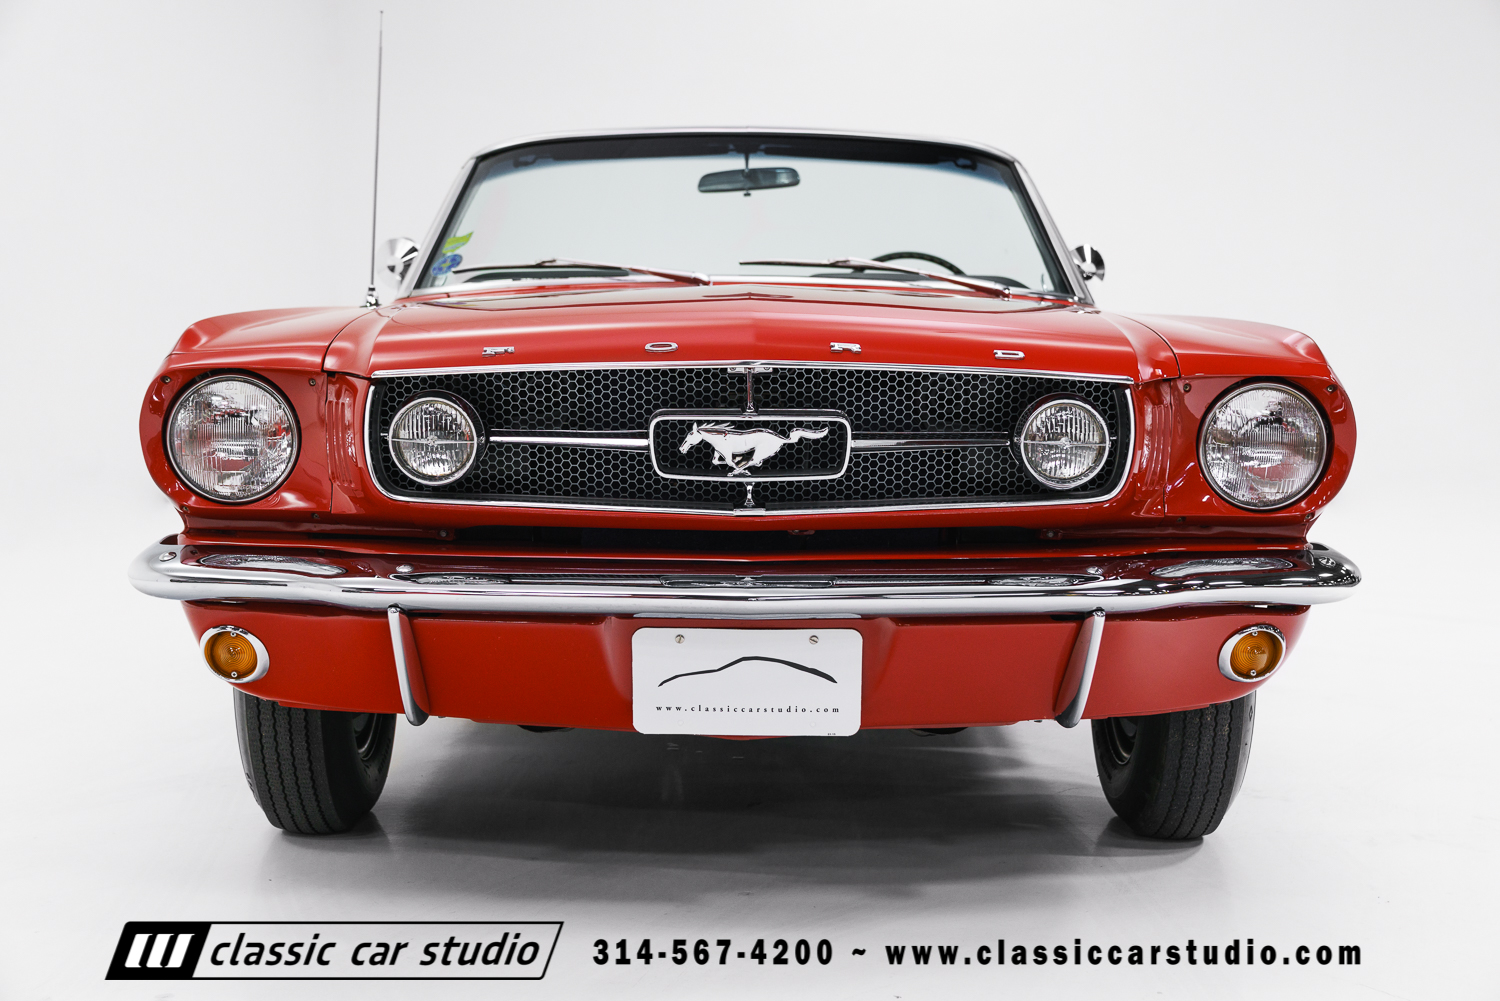 1965 ford mustang gt classic car studio. Black Bedroom Furniture Sets. Home Design Ideas